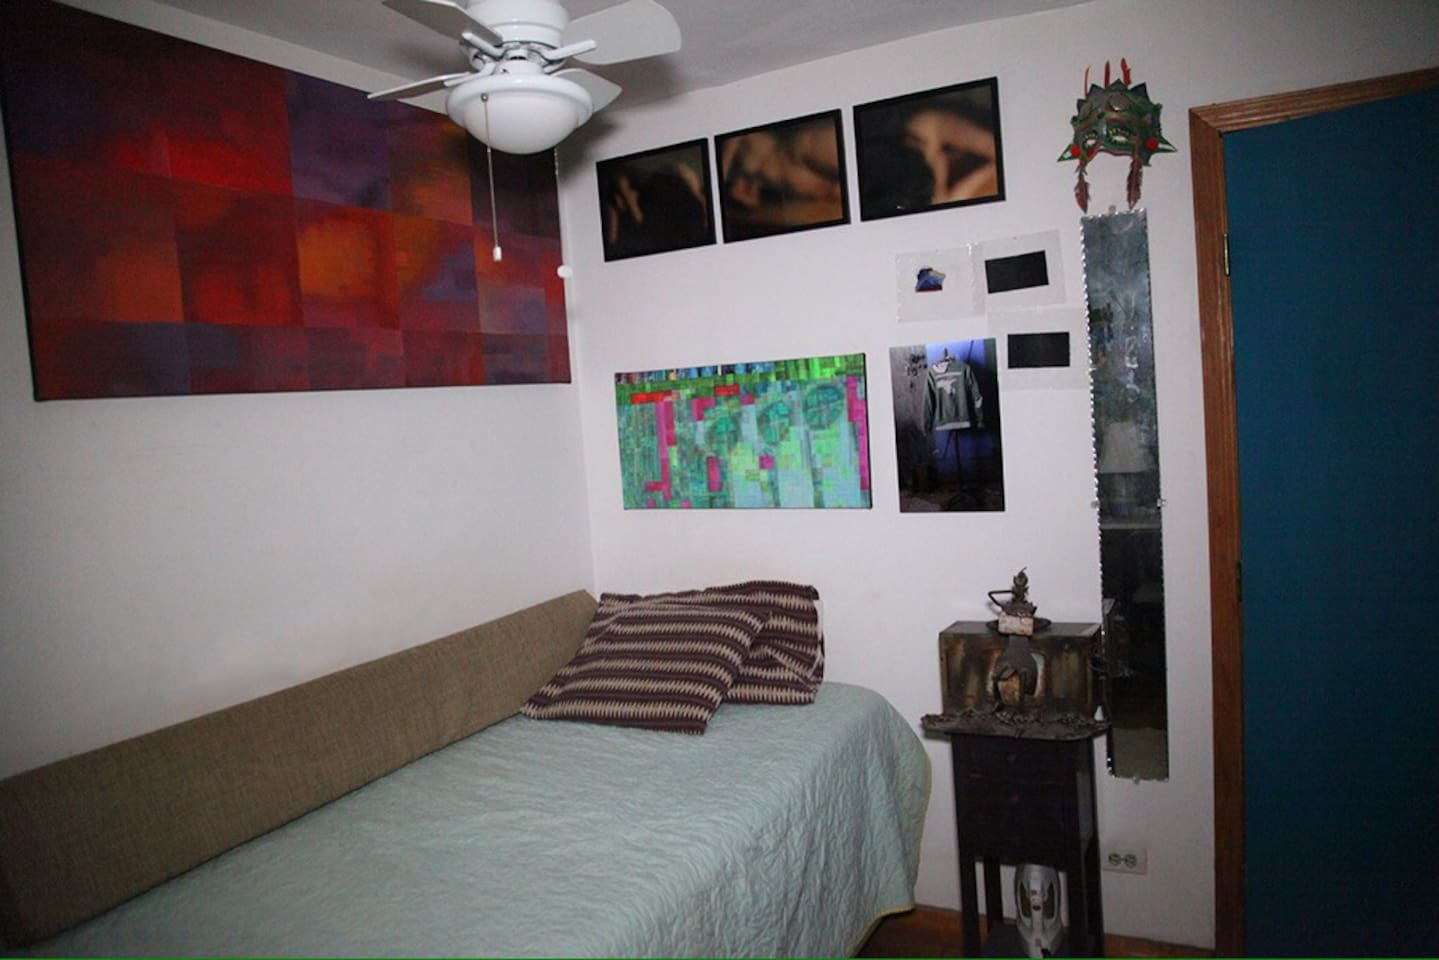 This is the bed and night stand for our guest. The room has its own ceiling fan, air conditioner, heater, and microwave.